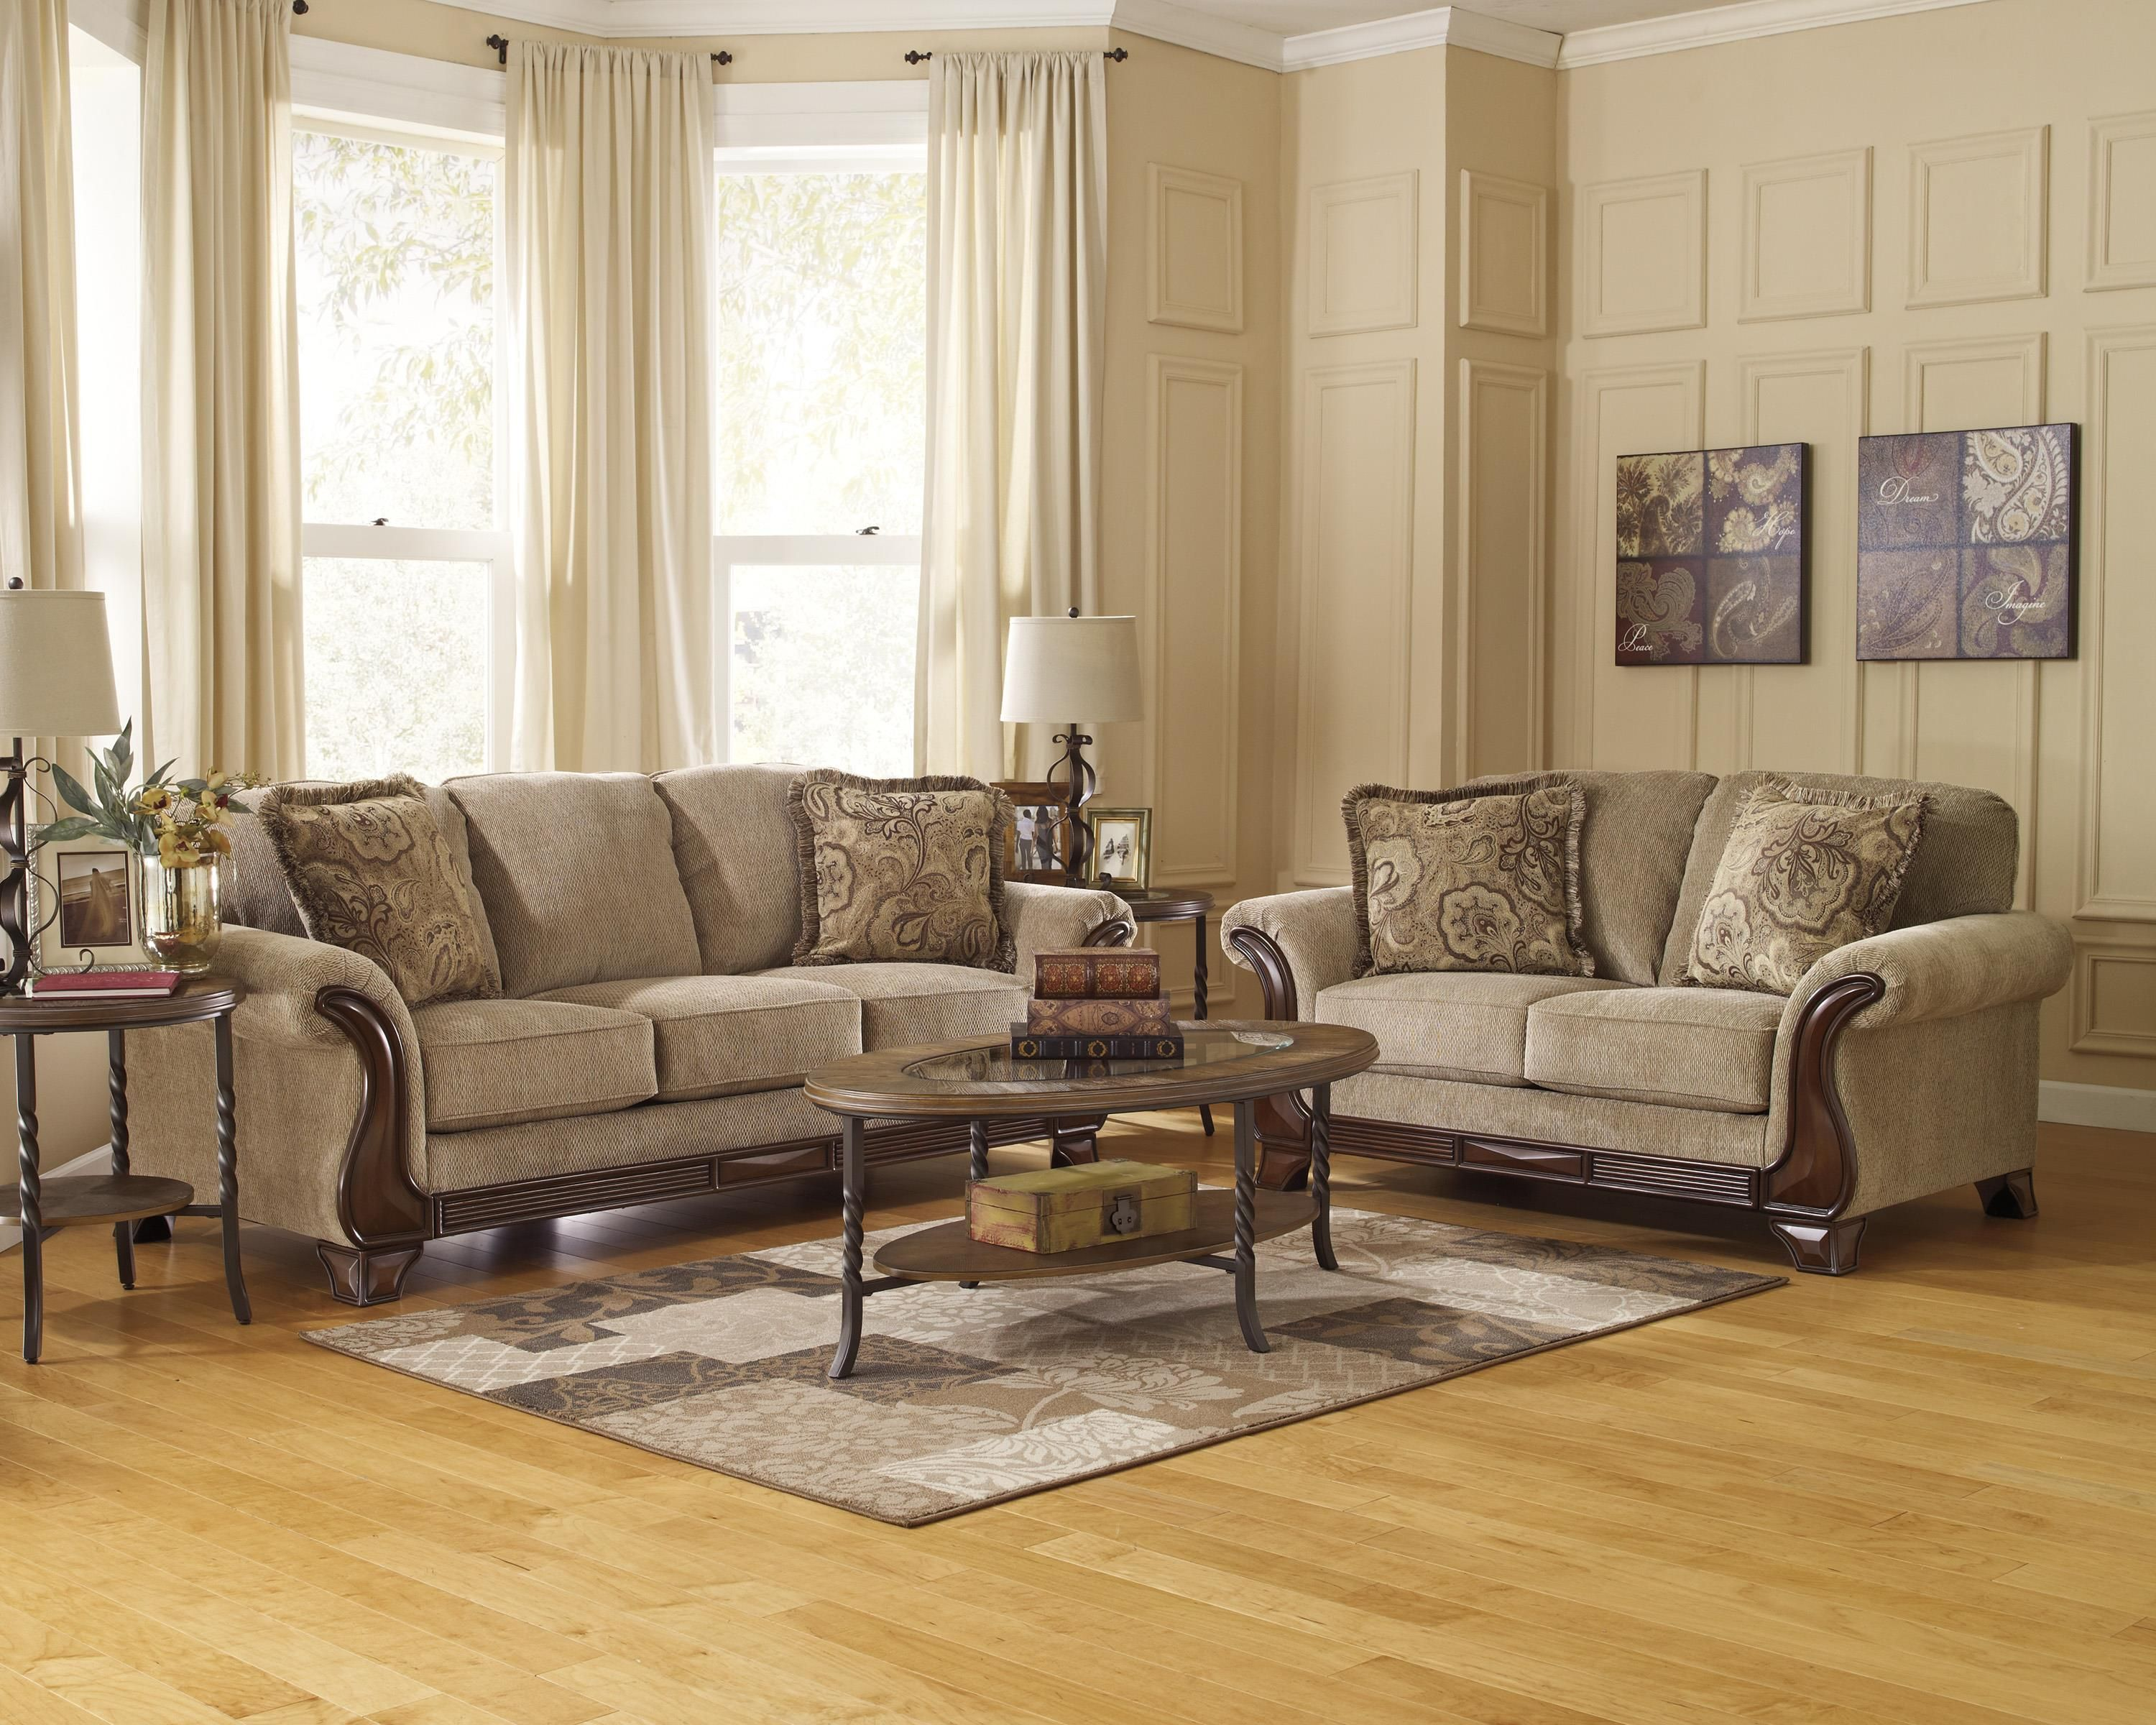 Lanett Stationary Living Room Group By Signature Design By Ashley Living Room Sets Living Room Furniture Couch Loveseat